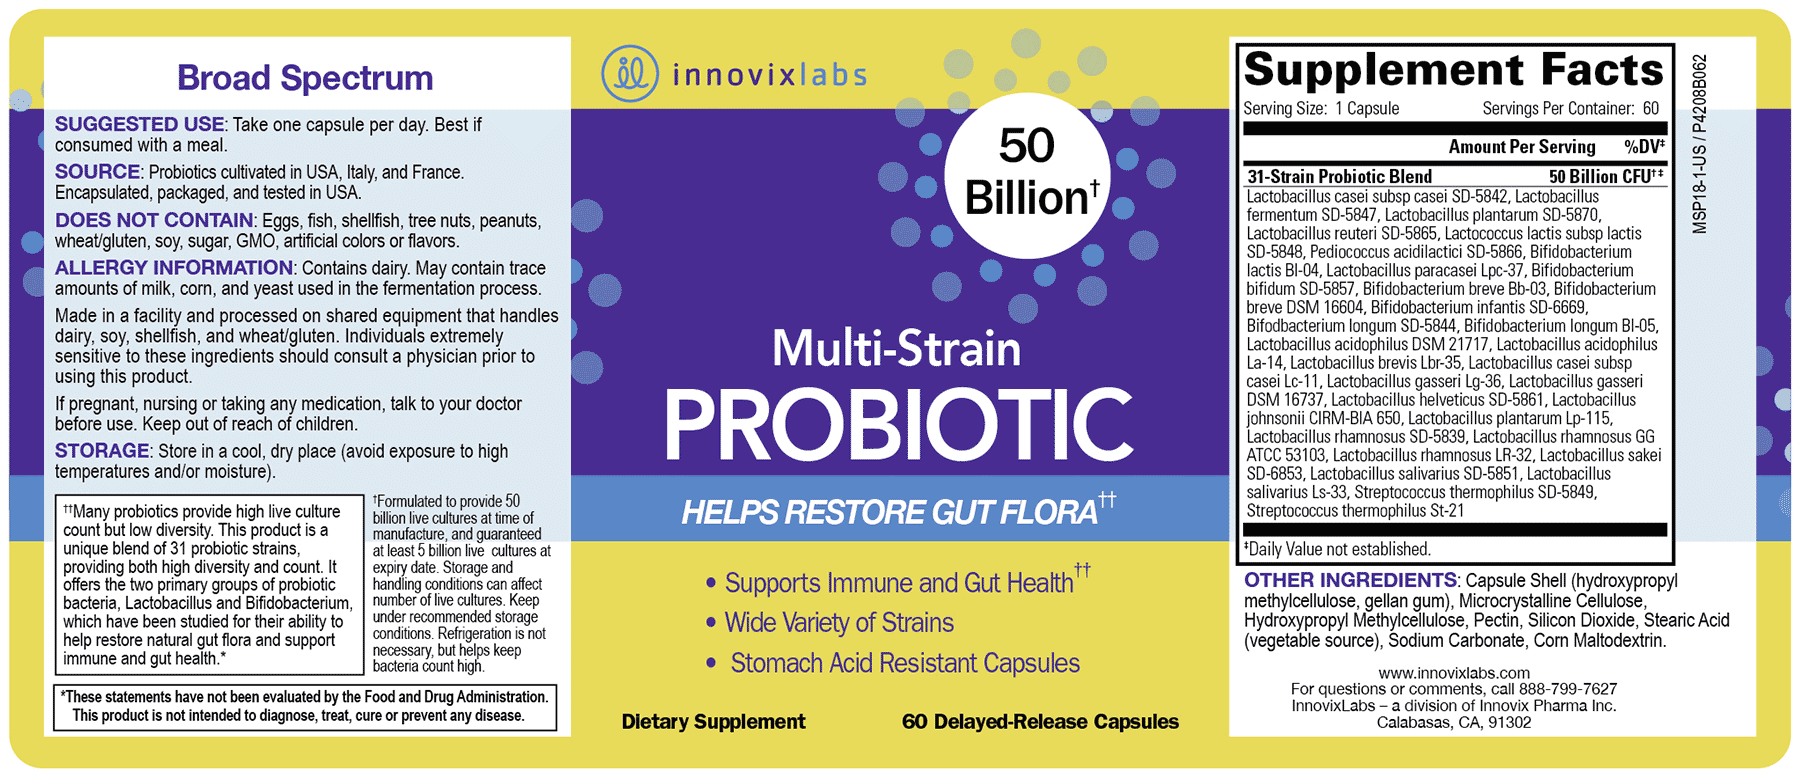 Product label for Multi-Strain PROBIOTIC